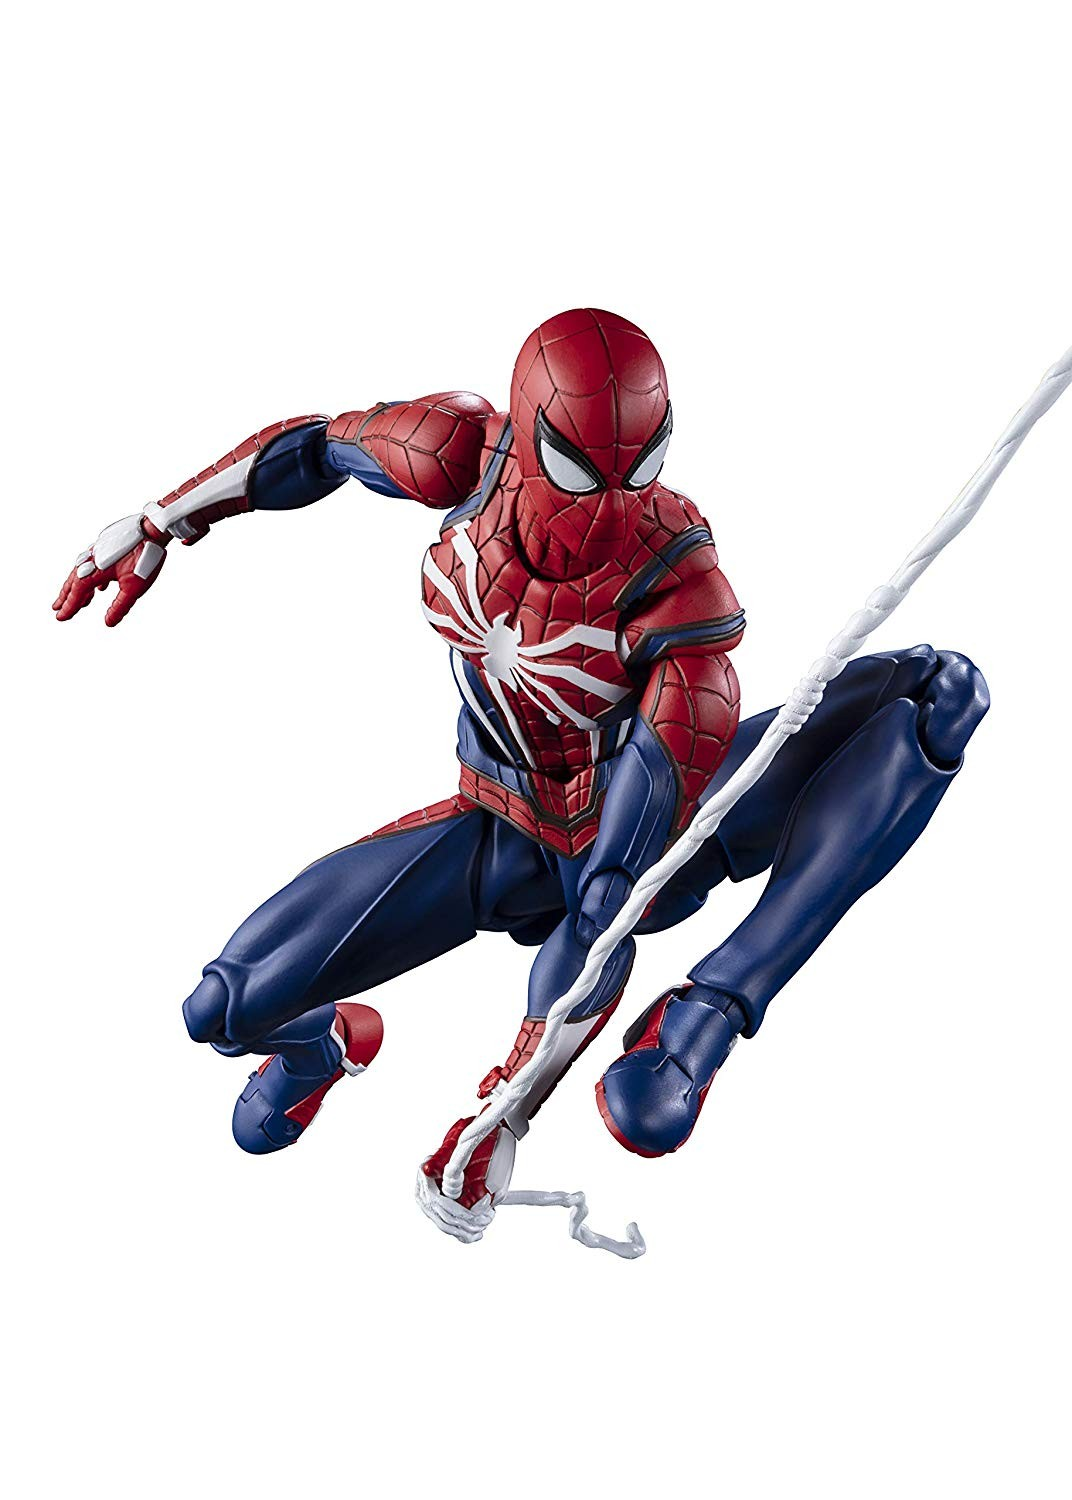 Bandai S.H.FIGUARTS SPIDER-MAN ADVANCED SUIT (MARVEL'S SPIDER-MAN) trackable shipping japan NEW ...